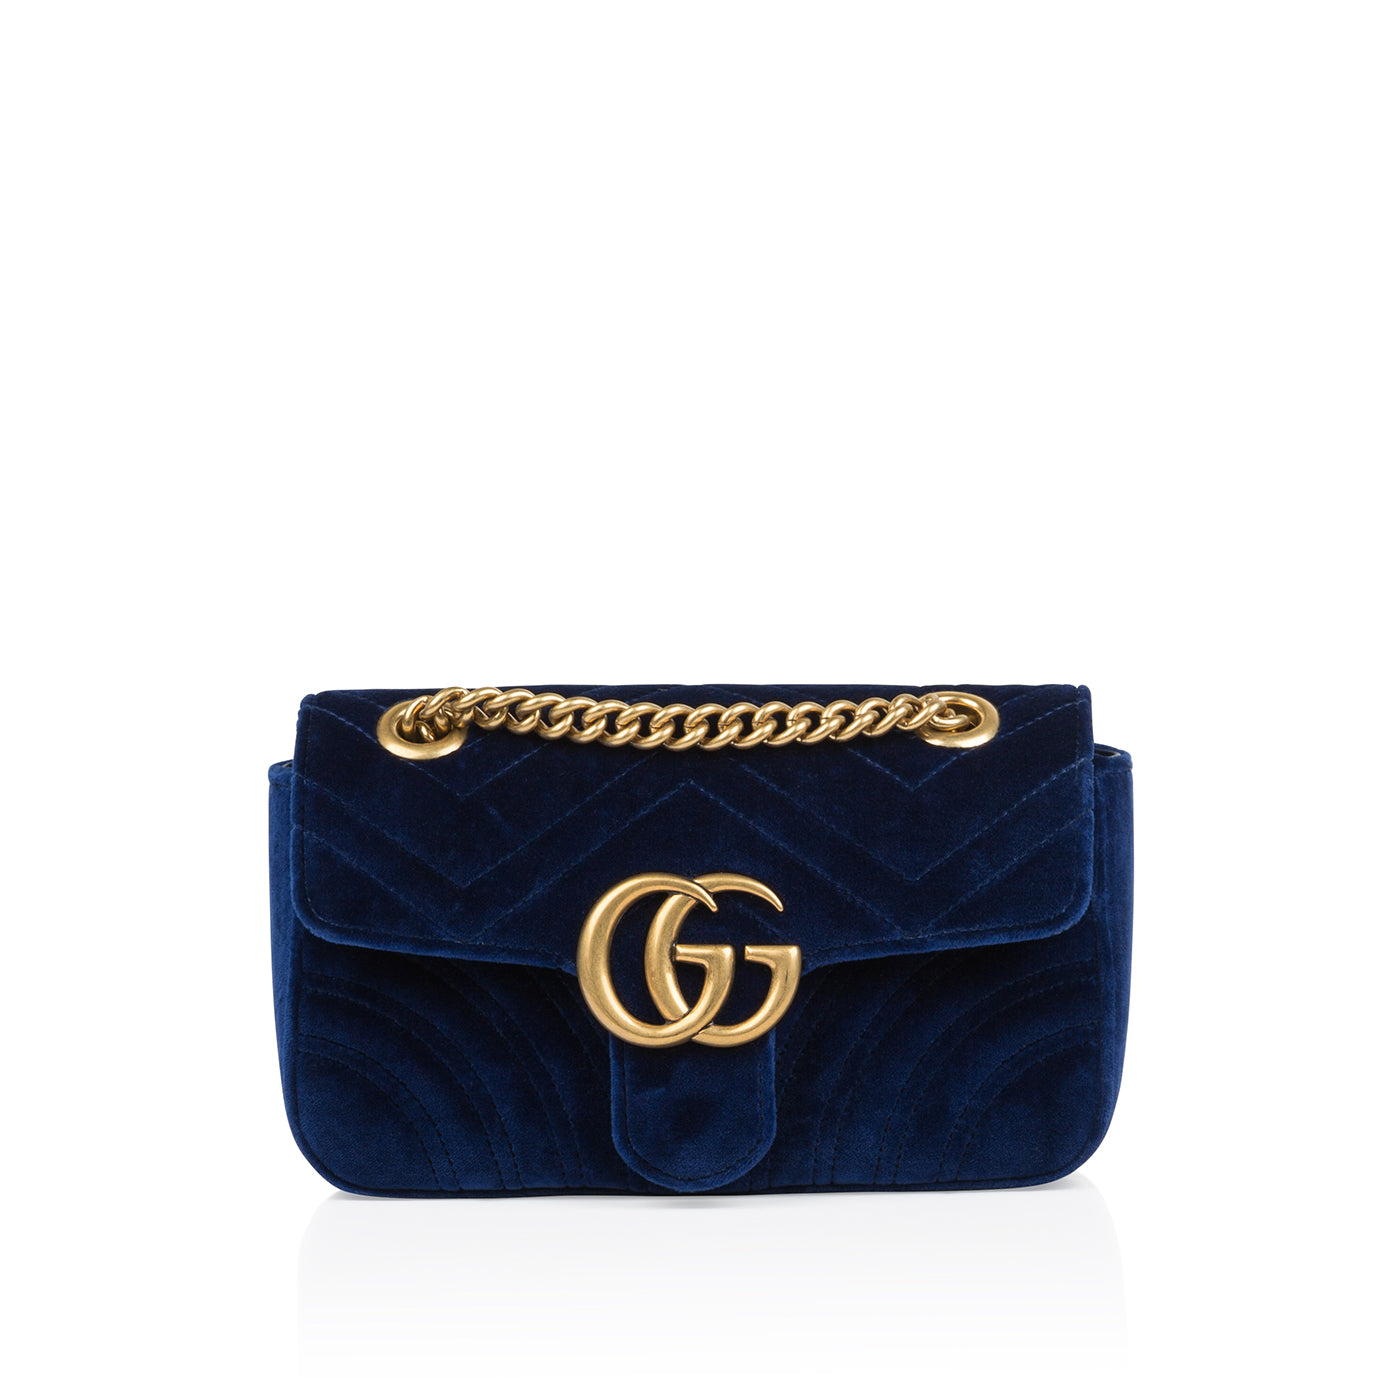 2323d37a0695 Gucci - Velvet Marmont - Navy Blue - Pre-Loved | Bagista